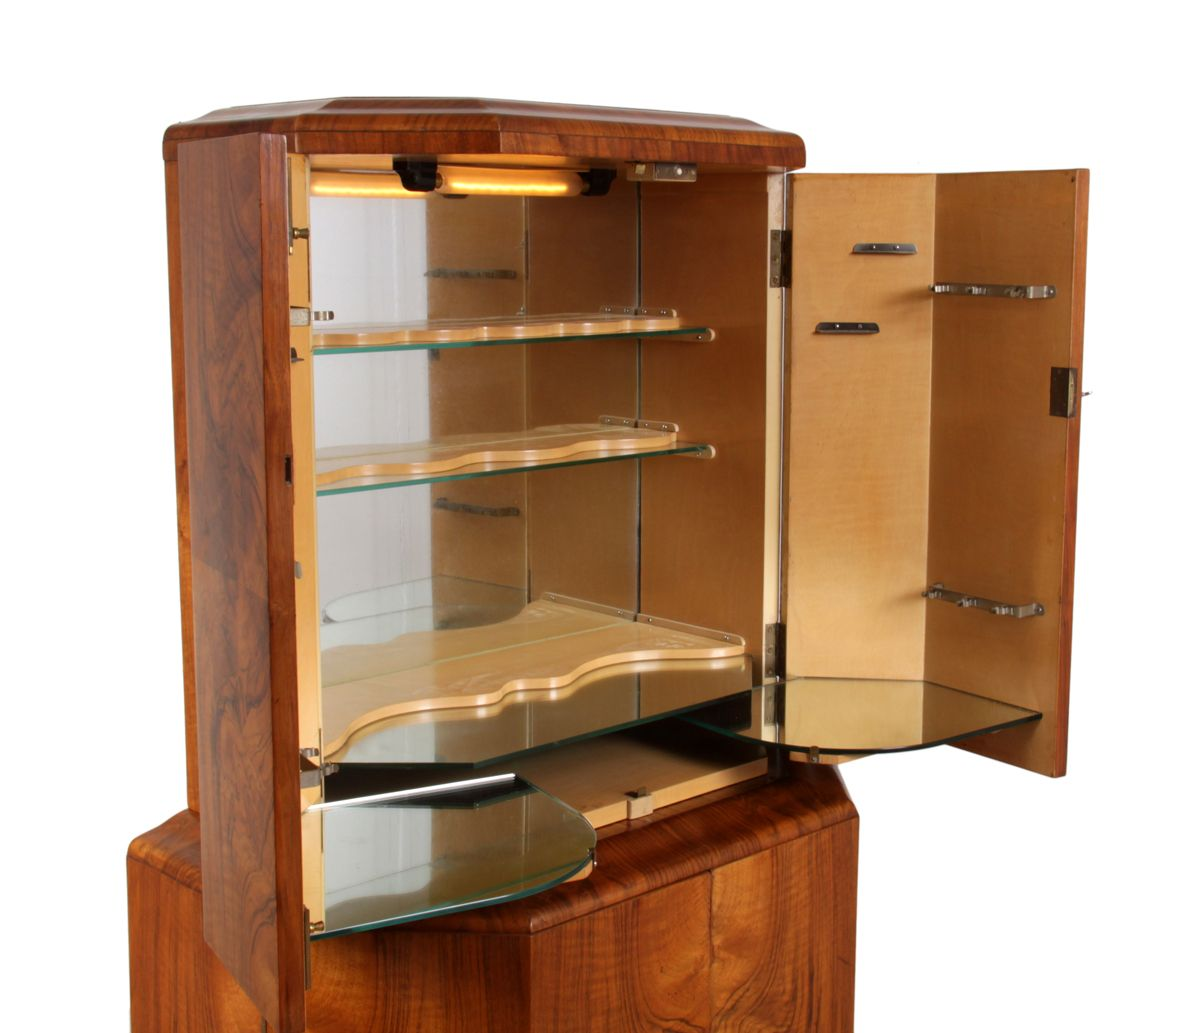 Art Deco Cocktail Cabinet In Walnut, 1930s 12. $3,334.00. Price Per Piece